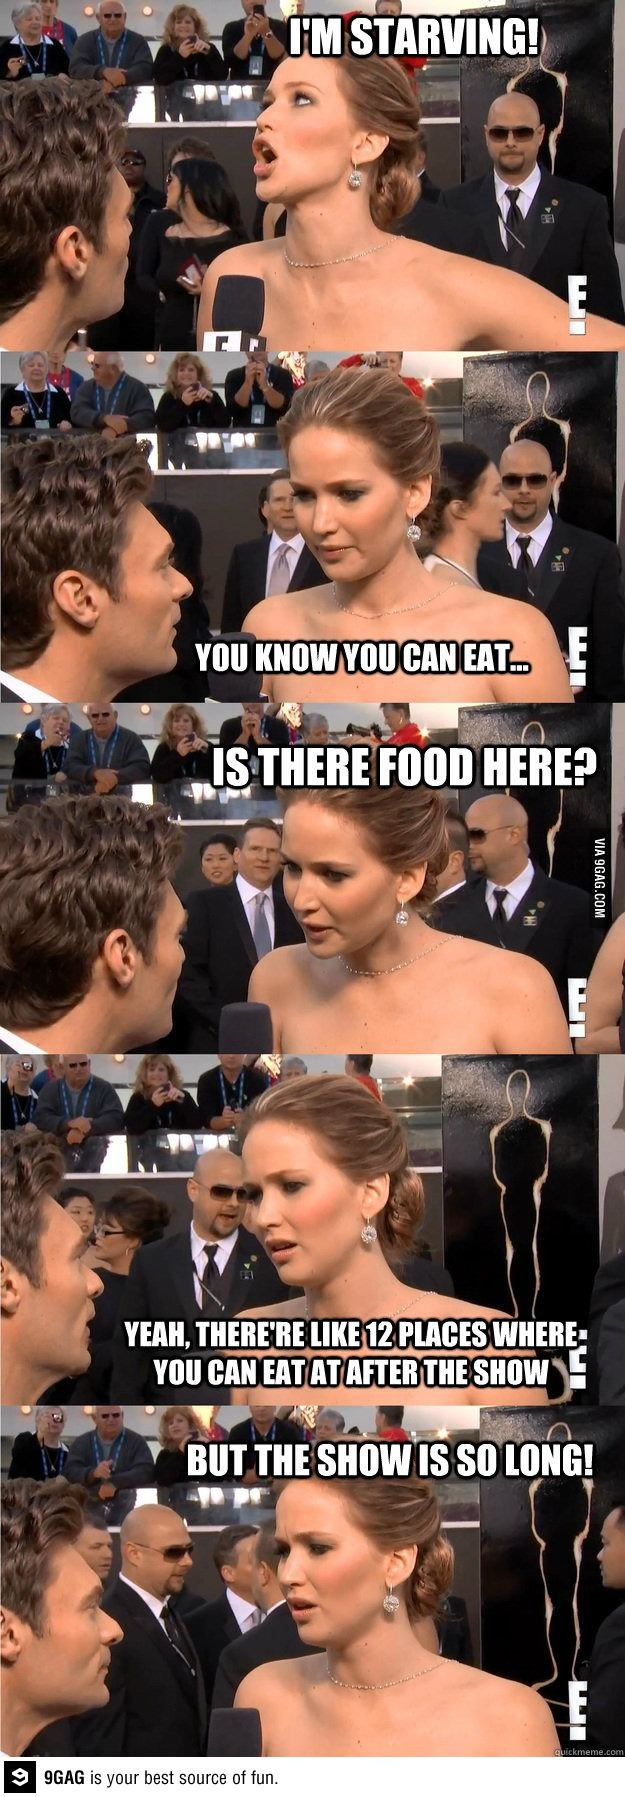 Jennifer Lawrence: the star of The Hunger Games who is forever hungry